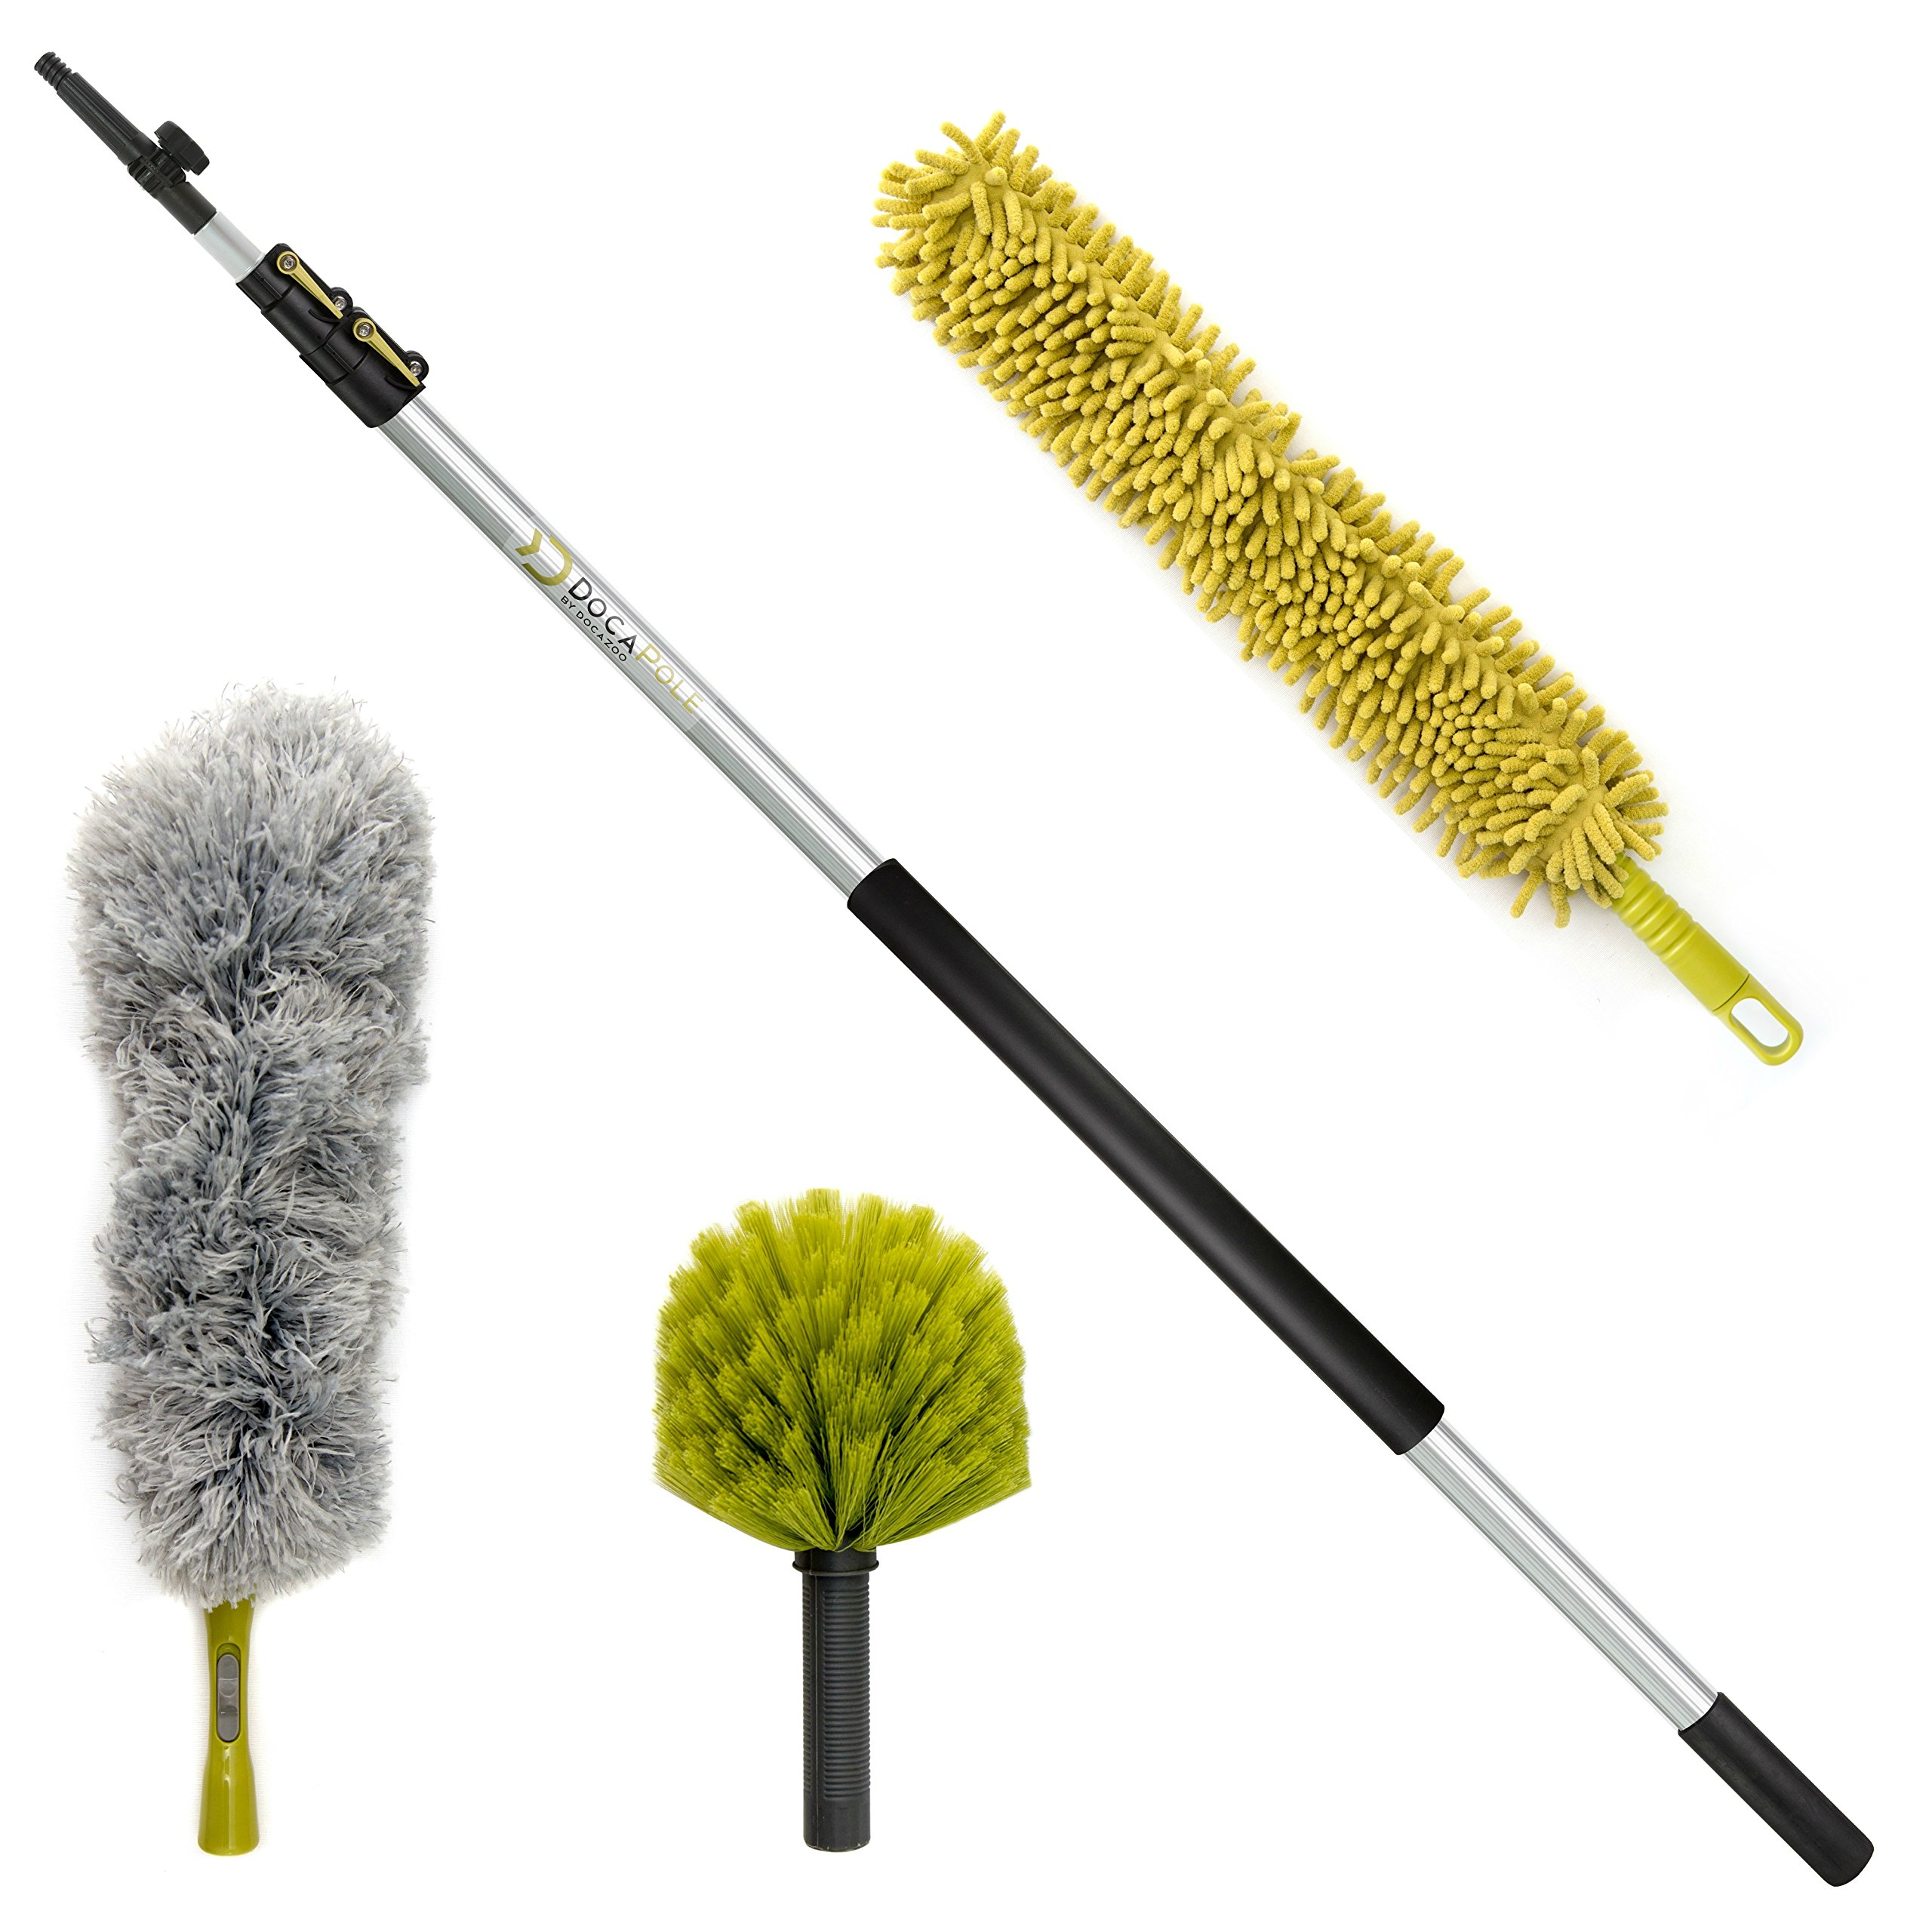 DocaPole 20 Foot High Reach Dusting Kit with 5-12 Foot Extension Pole // Cleaning Kit Includes 3 Dusting Attachments // Cobweb Duster // Microfiber Duster // Ceiling Fan Duster